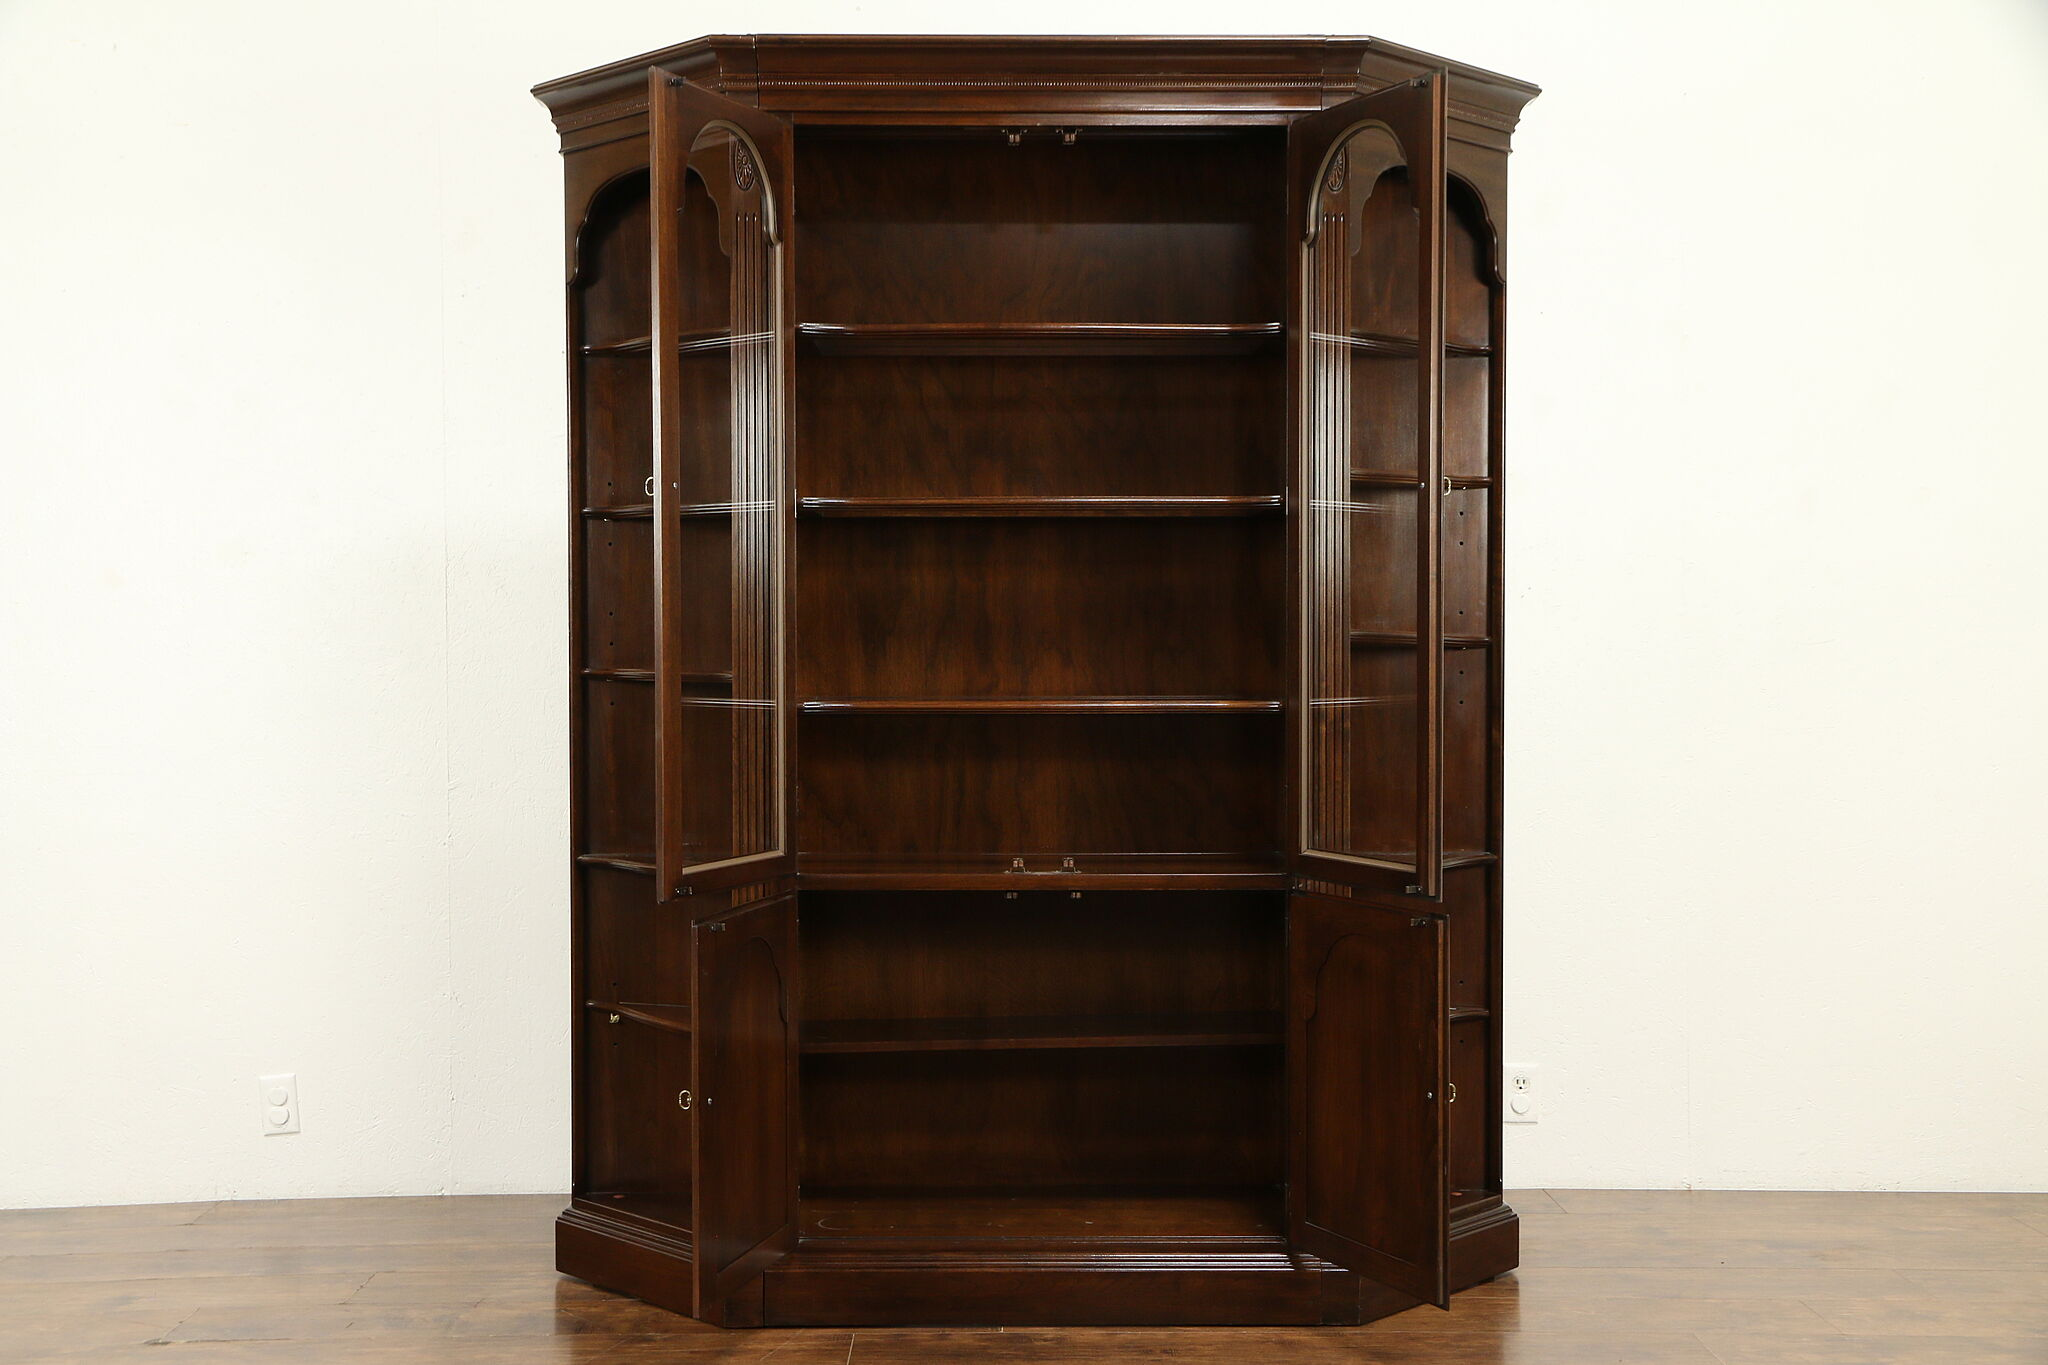 Cherry Vintage Three Section Bookcase China Cabinet Ethan Allen 31826